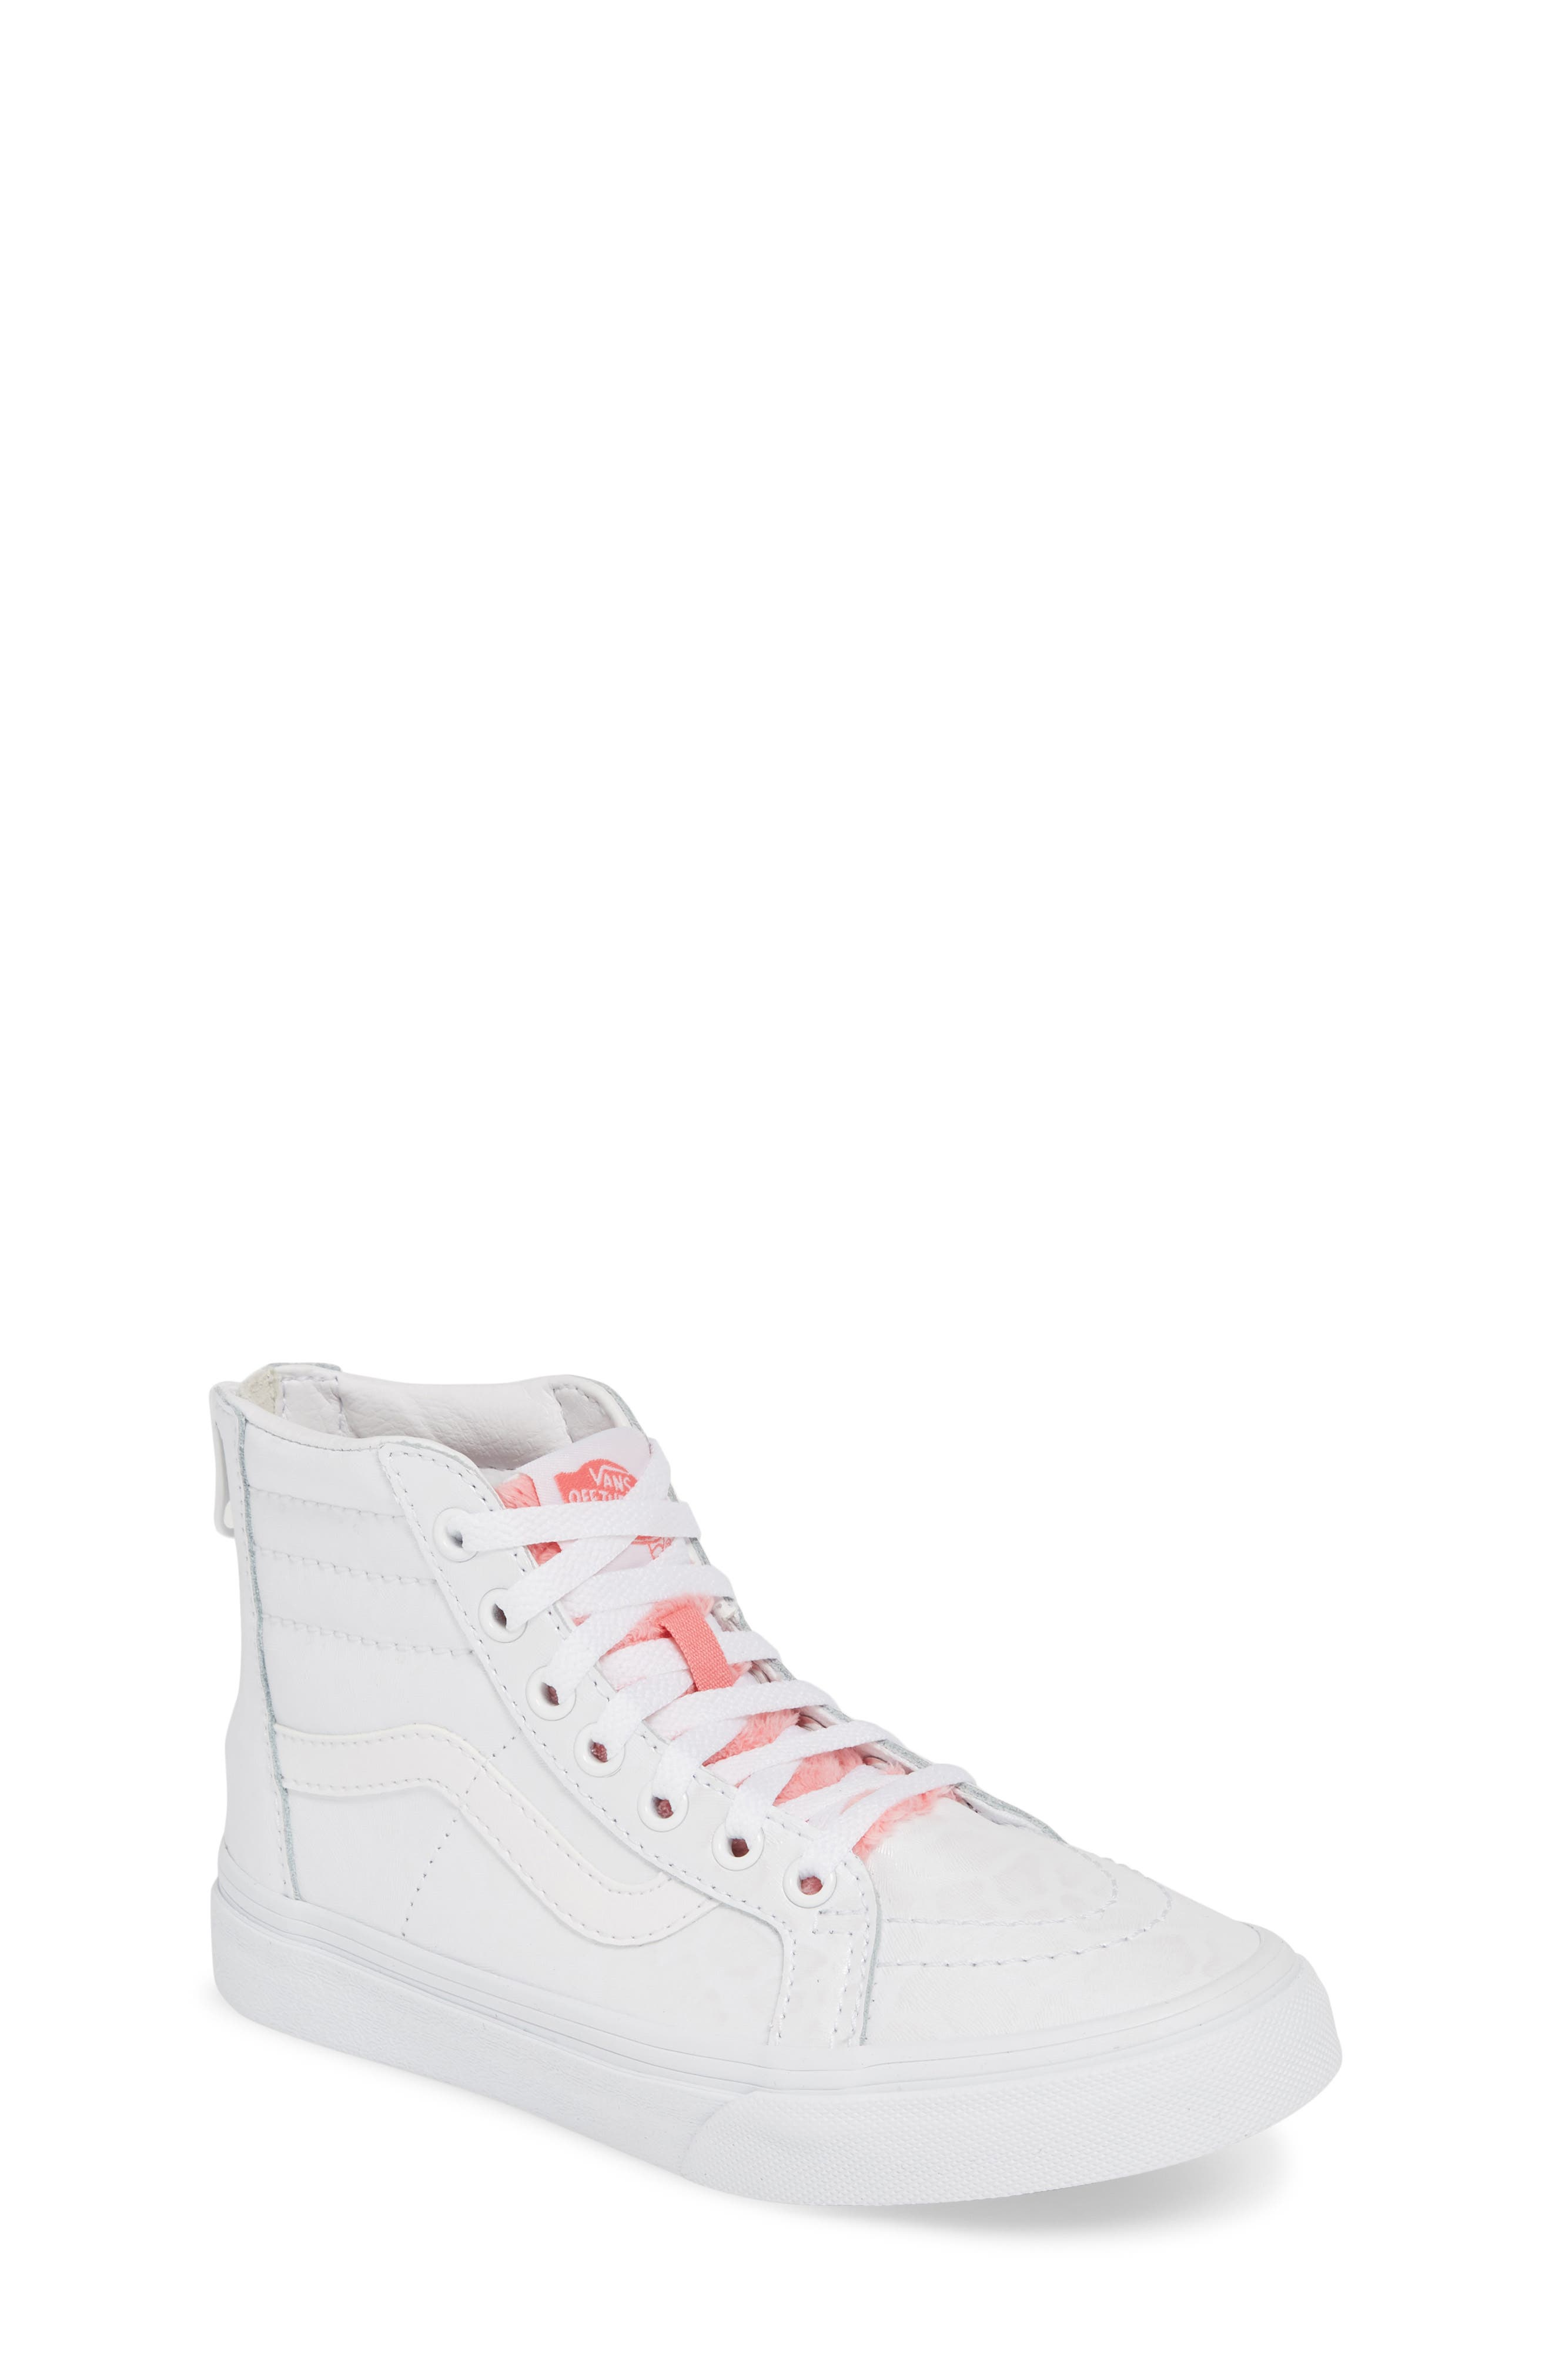 SK8-Hi Zip Leather & Faux Fur Sneaker, Main, color, WHITE GIRAFFE TRUE WHITE/ PINK